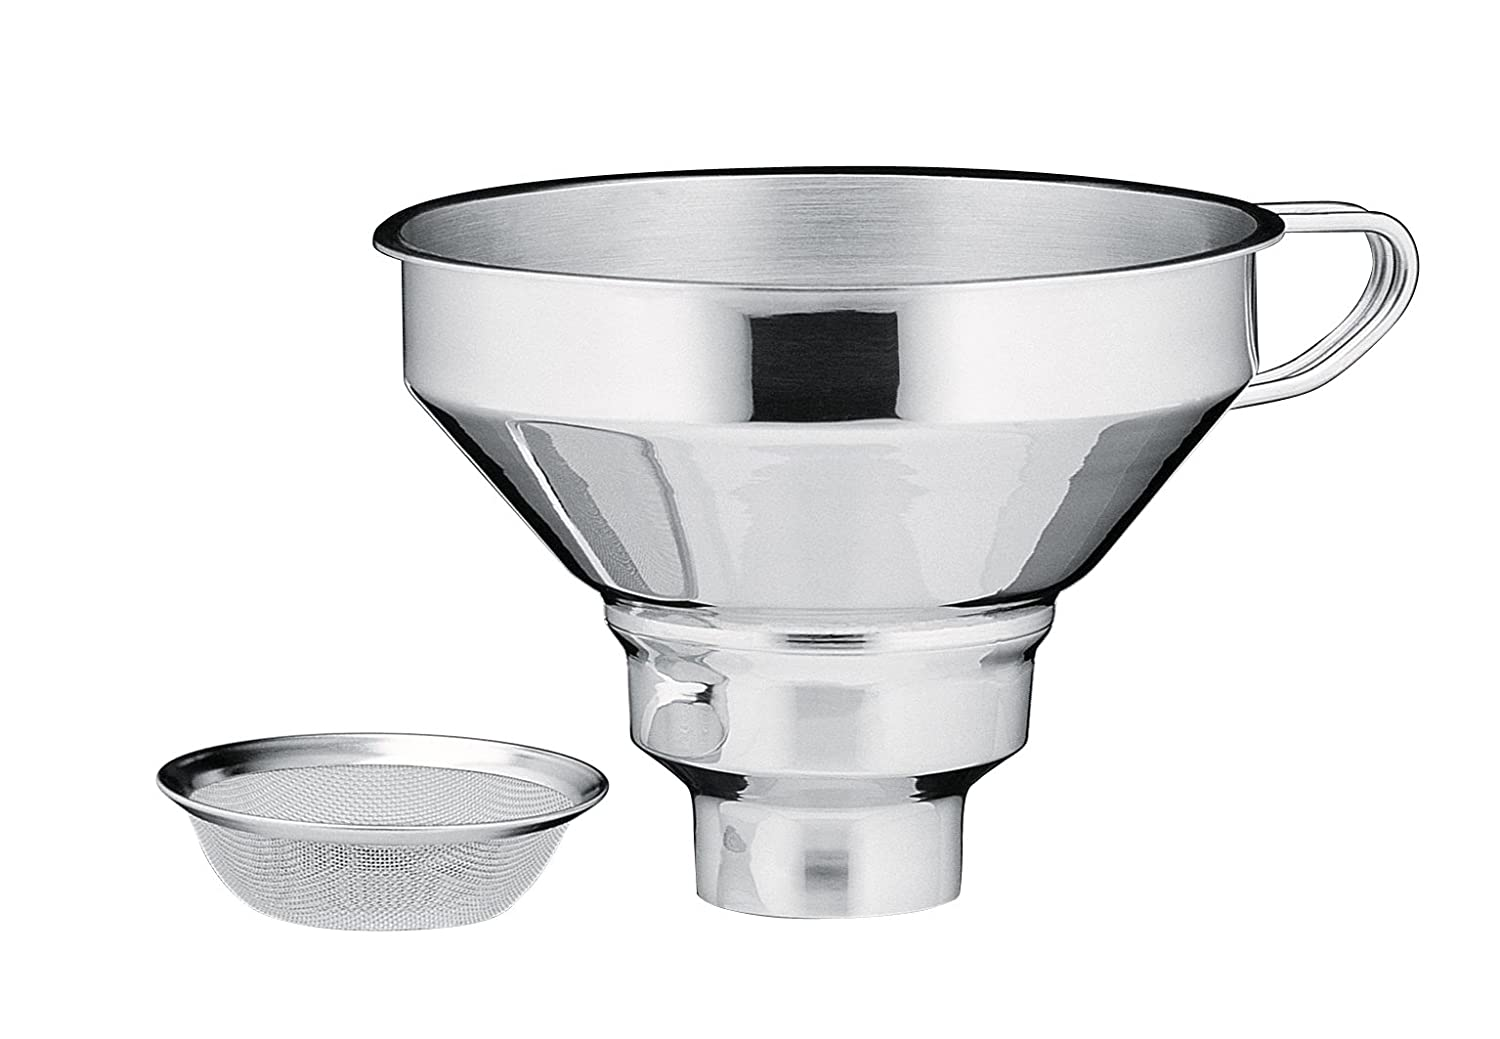 Kuchenprofi 18/10 Stainless Steel Funnel with Filter K0920152800